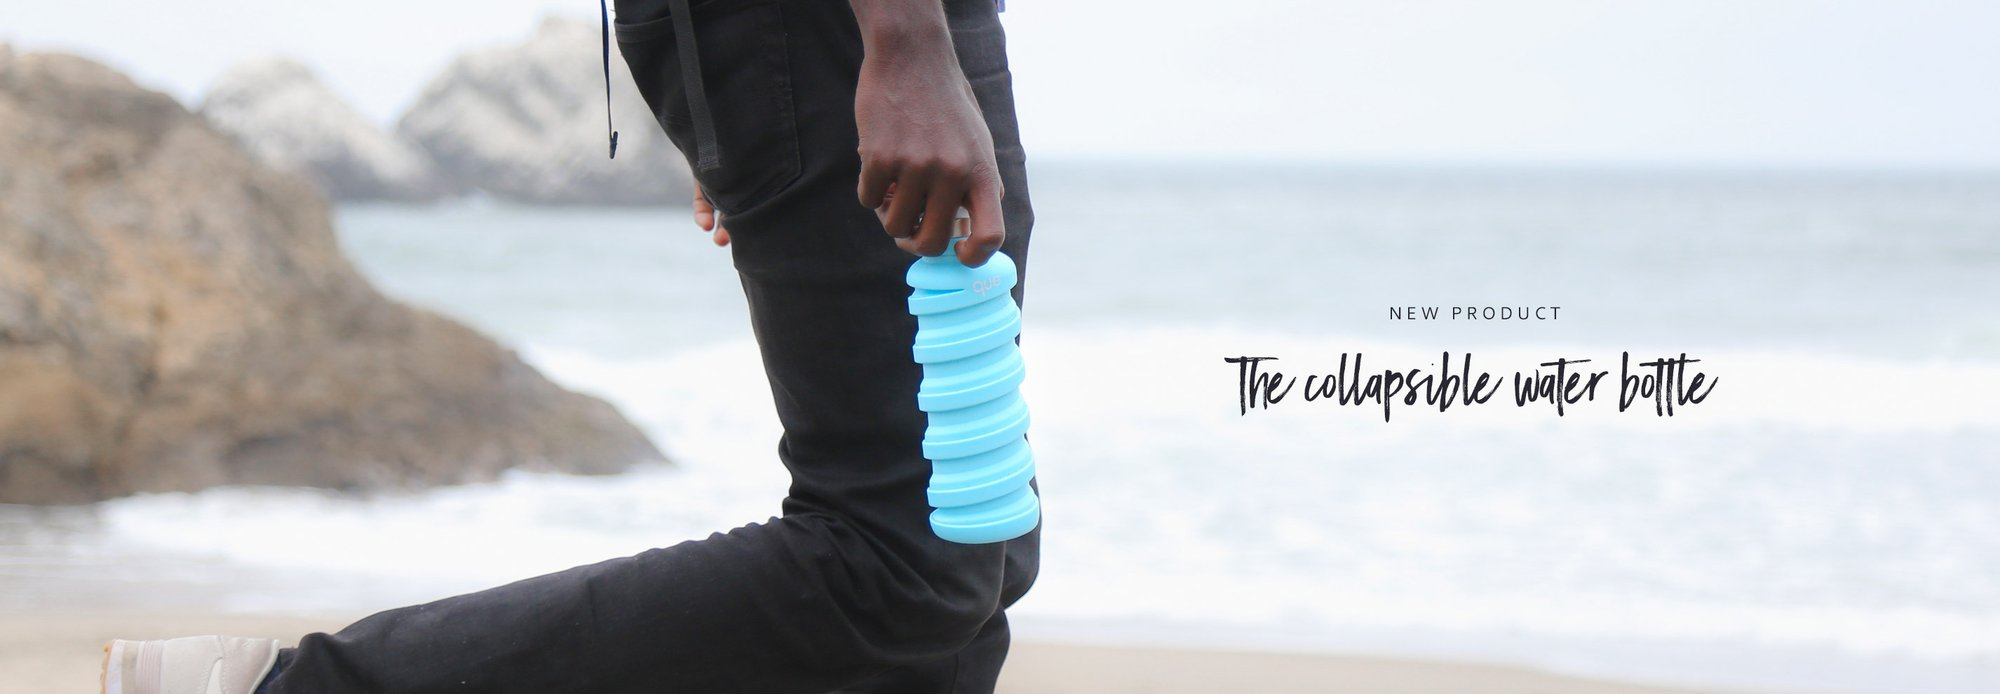 New zero waste product, the collapsible bottle